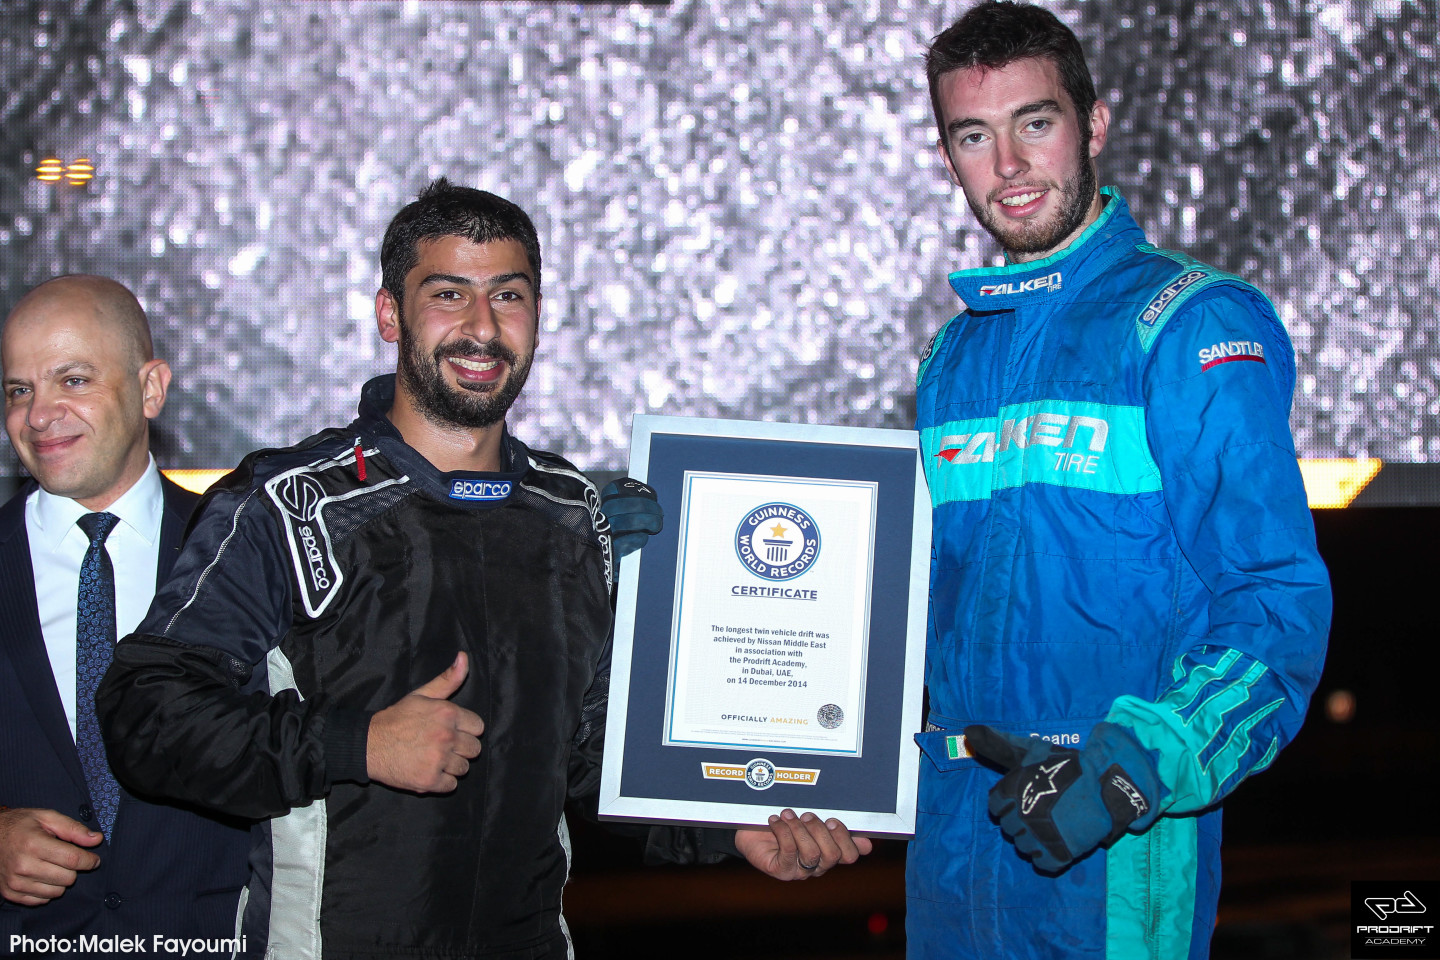 James Deane and Ahmad Daham celebrate achieving Guinness World Record